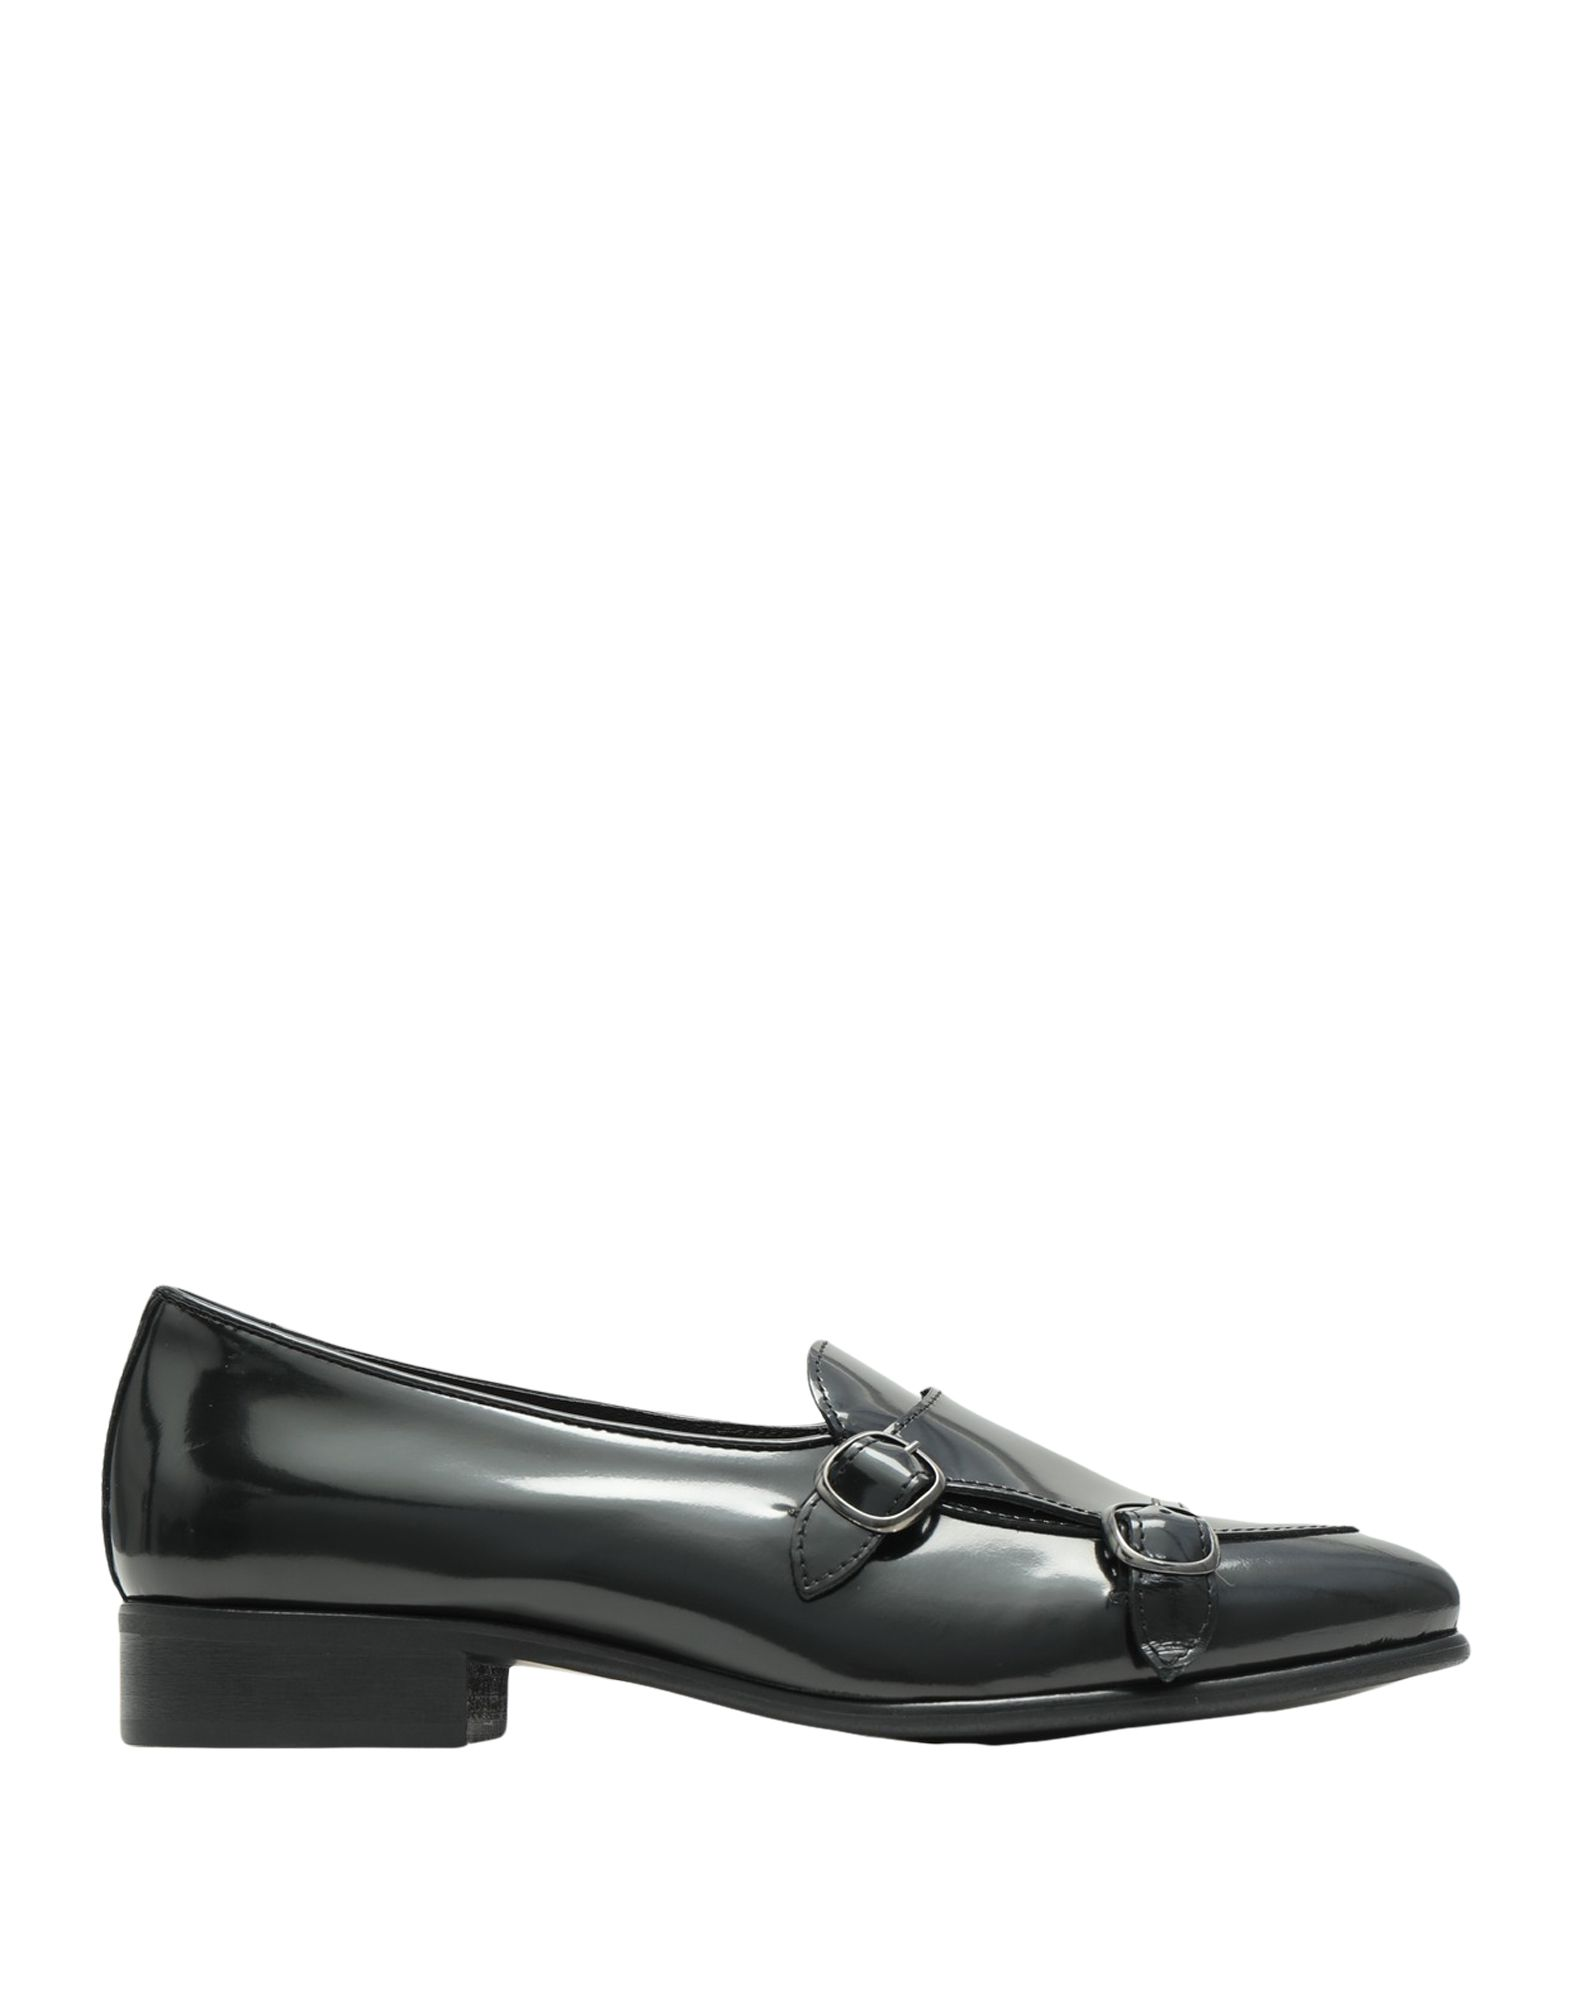 Leonardo Principi Loafers - Women Leonardo Principi Loafers online on 11542317RU  United Kingdom - 11542317RU on 227614